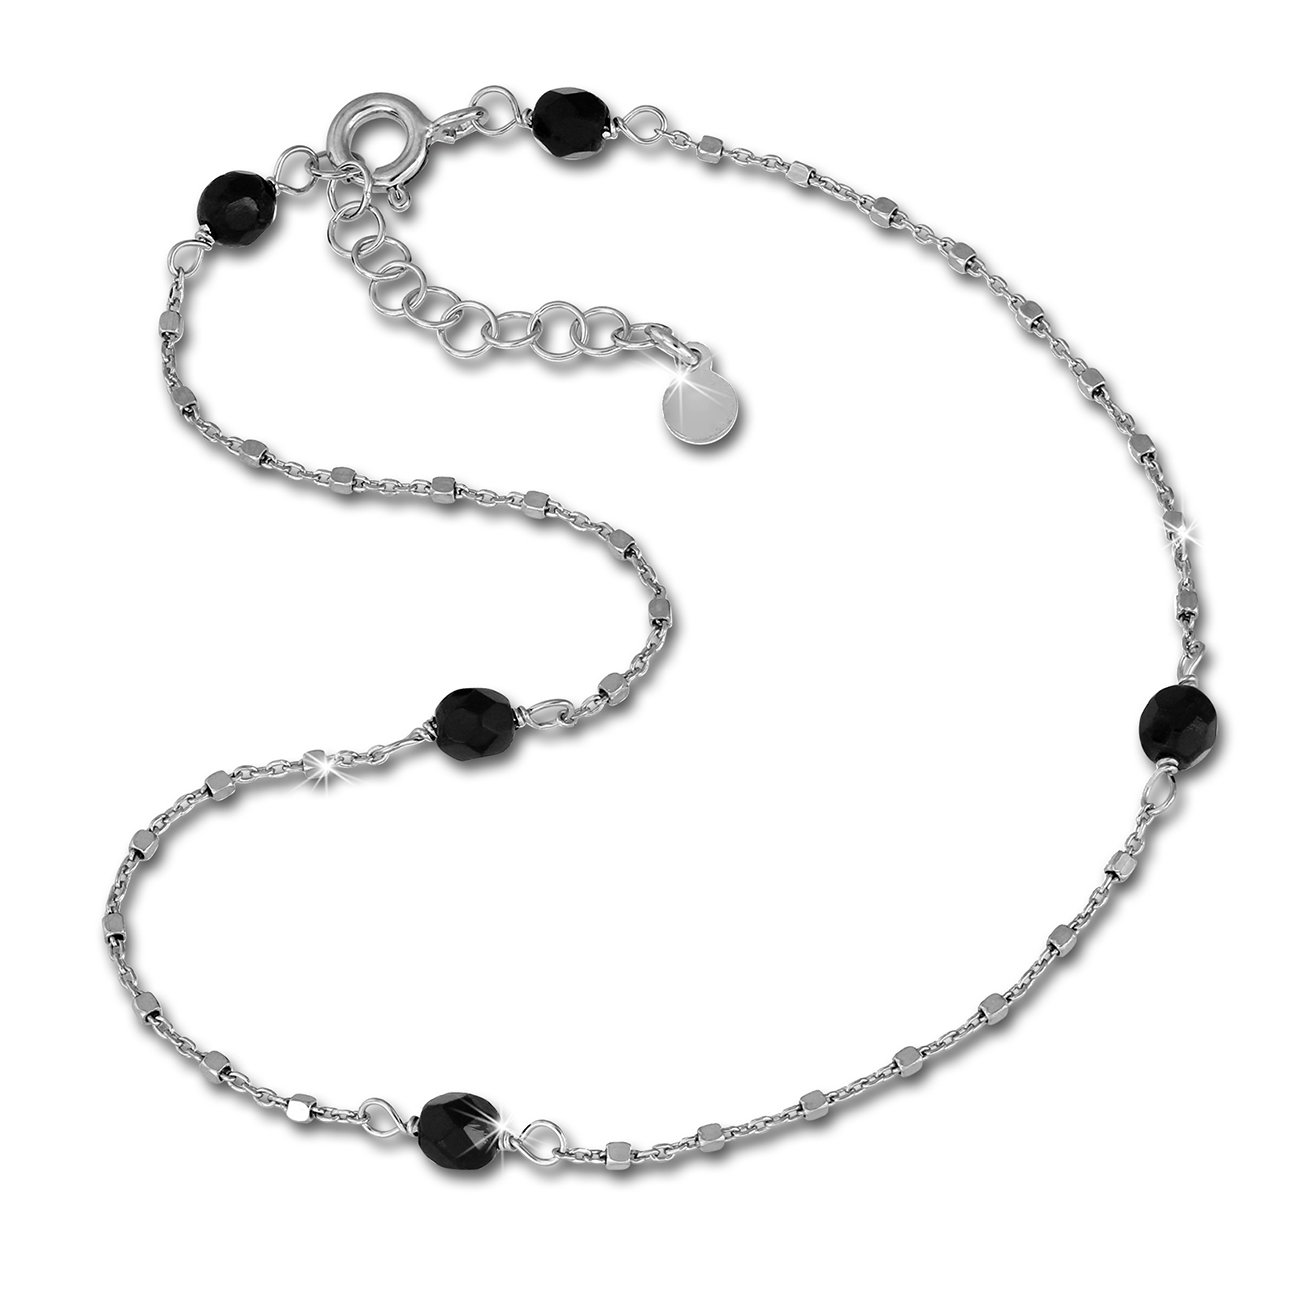 /Black Beads/ /Anklet 925/Sterling Silver Jewelry Foot Chain sdf2234j SilberDream Anklet/ /27/cm/